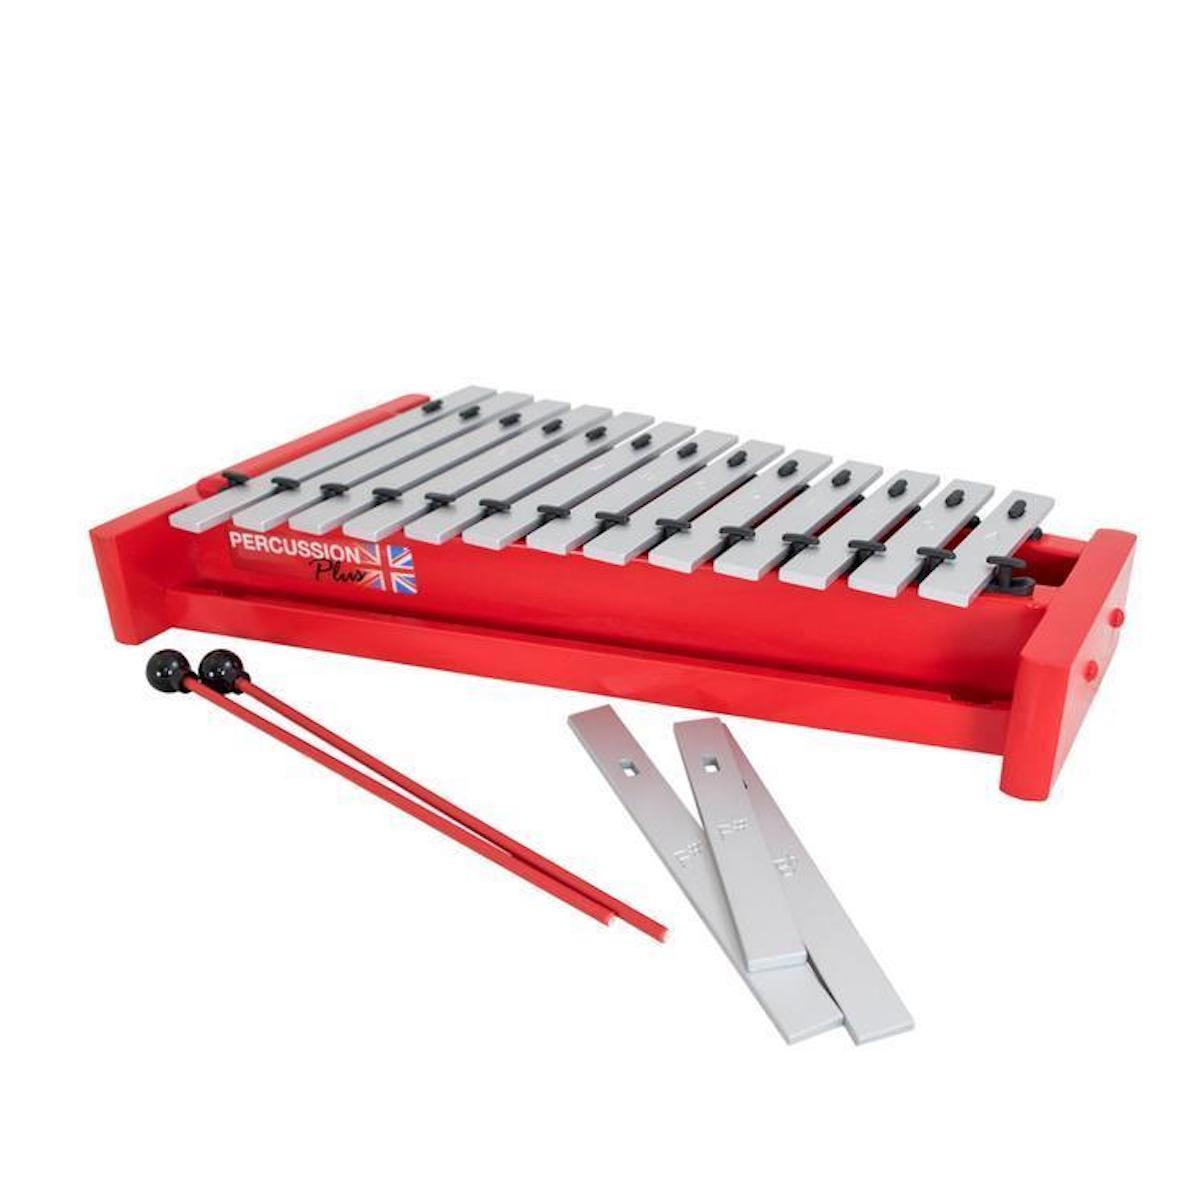 Percussion Plus Classic Red Box Soprano Diatonic Glockenspiel